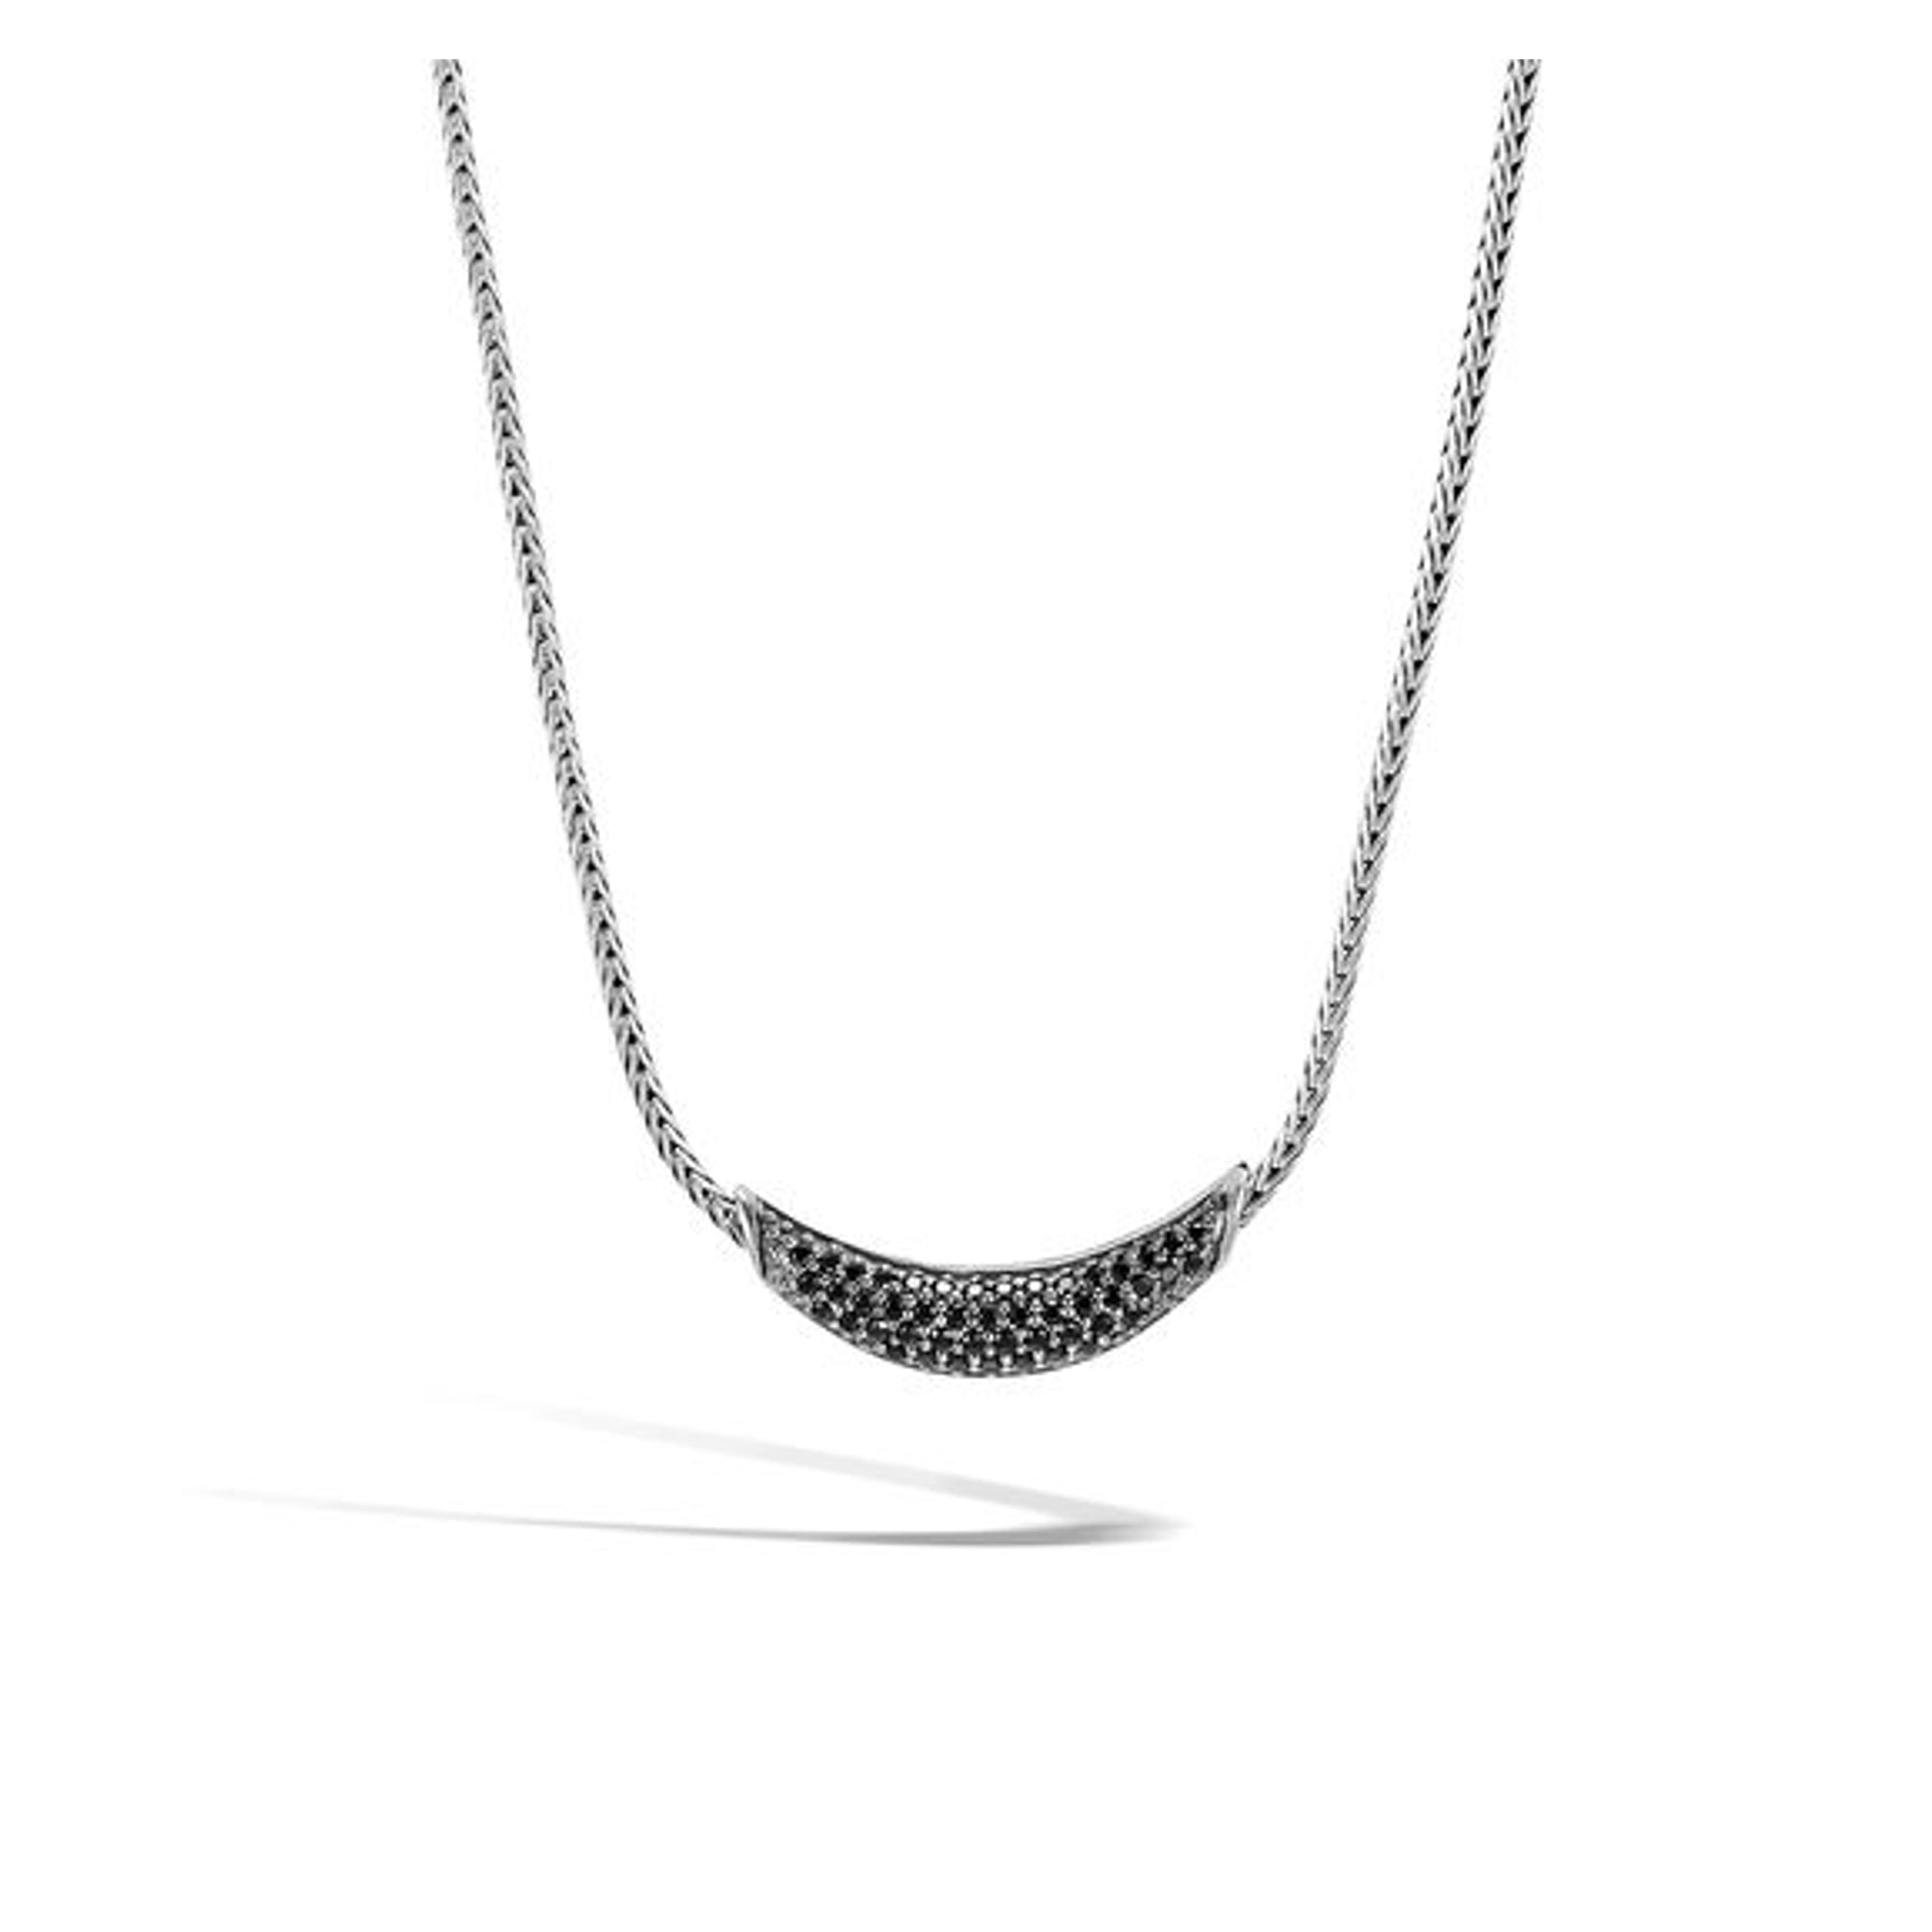 Women's Classic Chain Necklace with Black Sapphire, Black Spinel